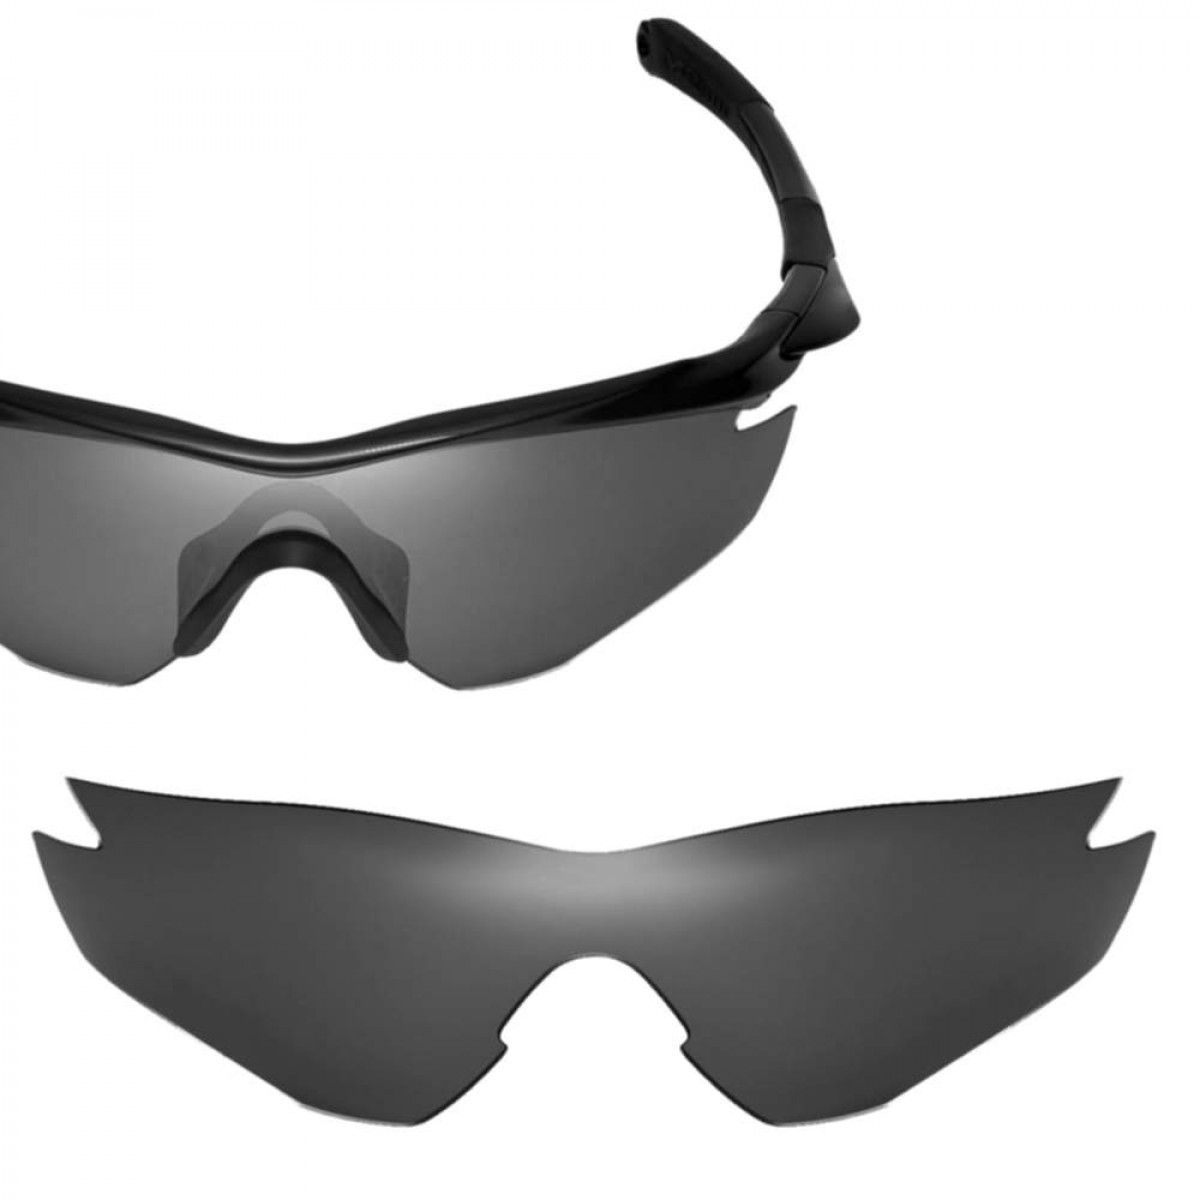 08872207278 Cofery Lenses Store Cofery Replacement Lenses for Oakley M2 Sunglasses